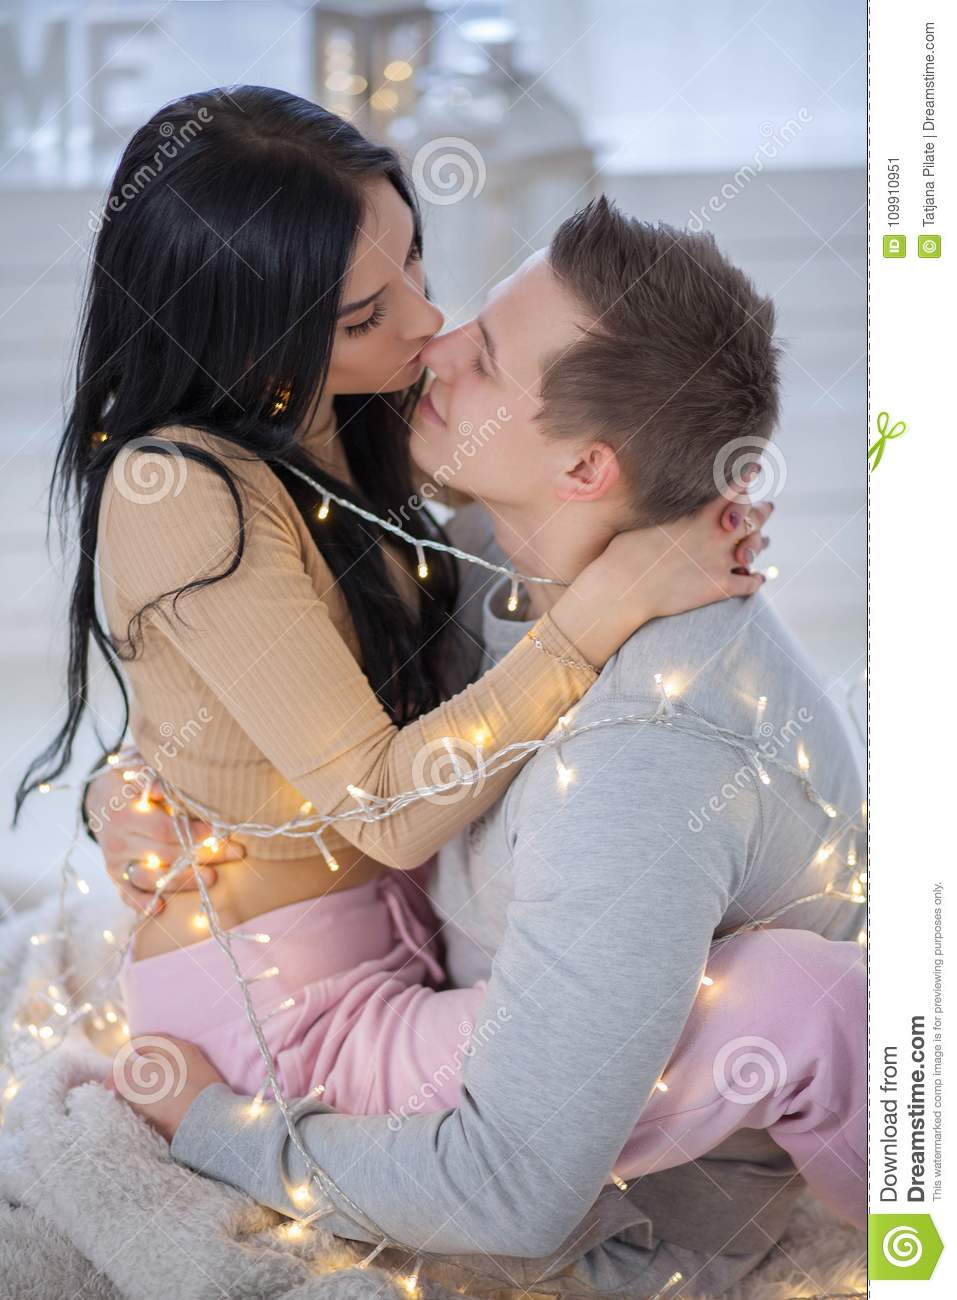 couple in love hugging and kissing stock image image of lights